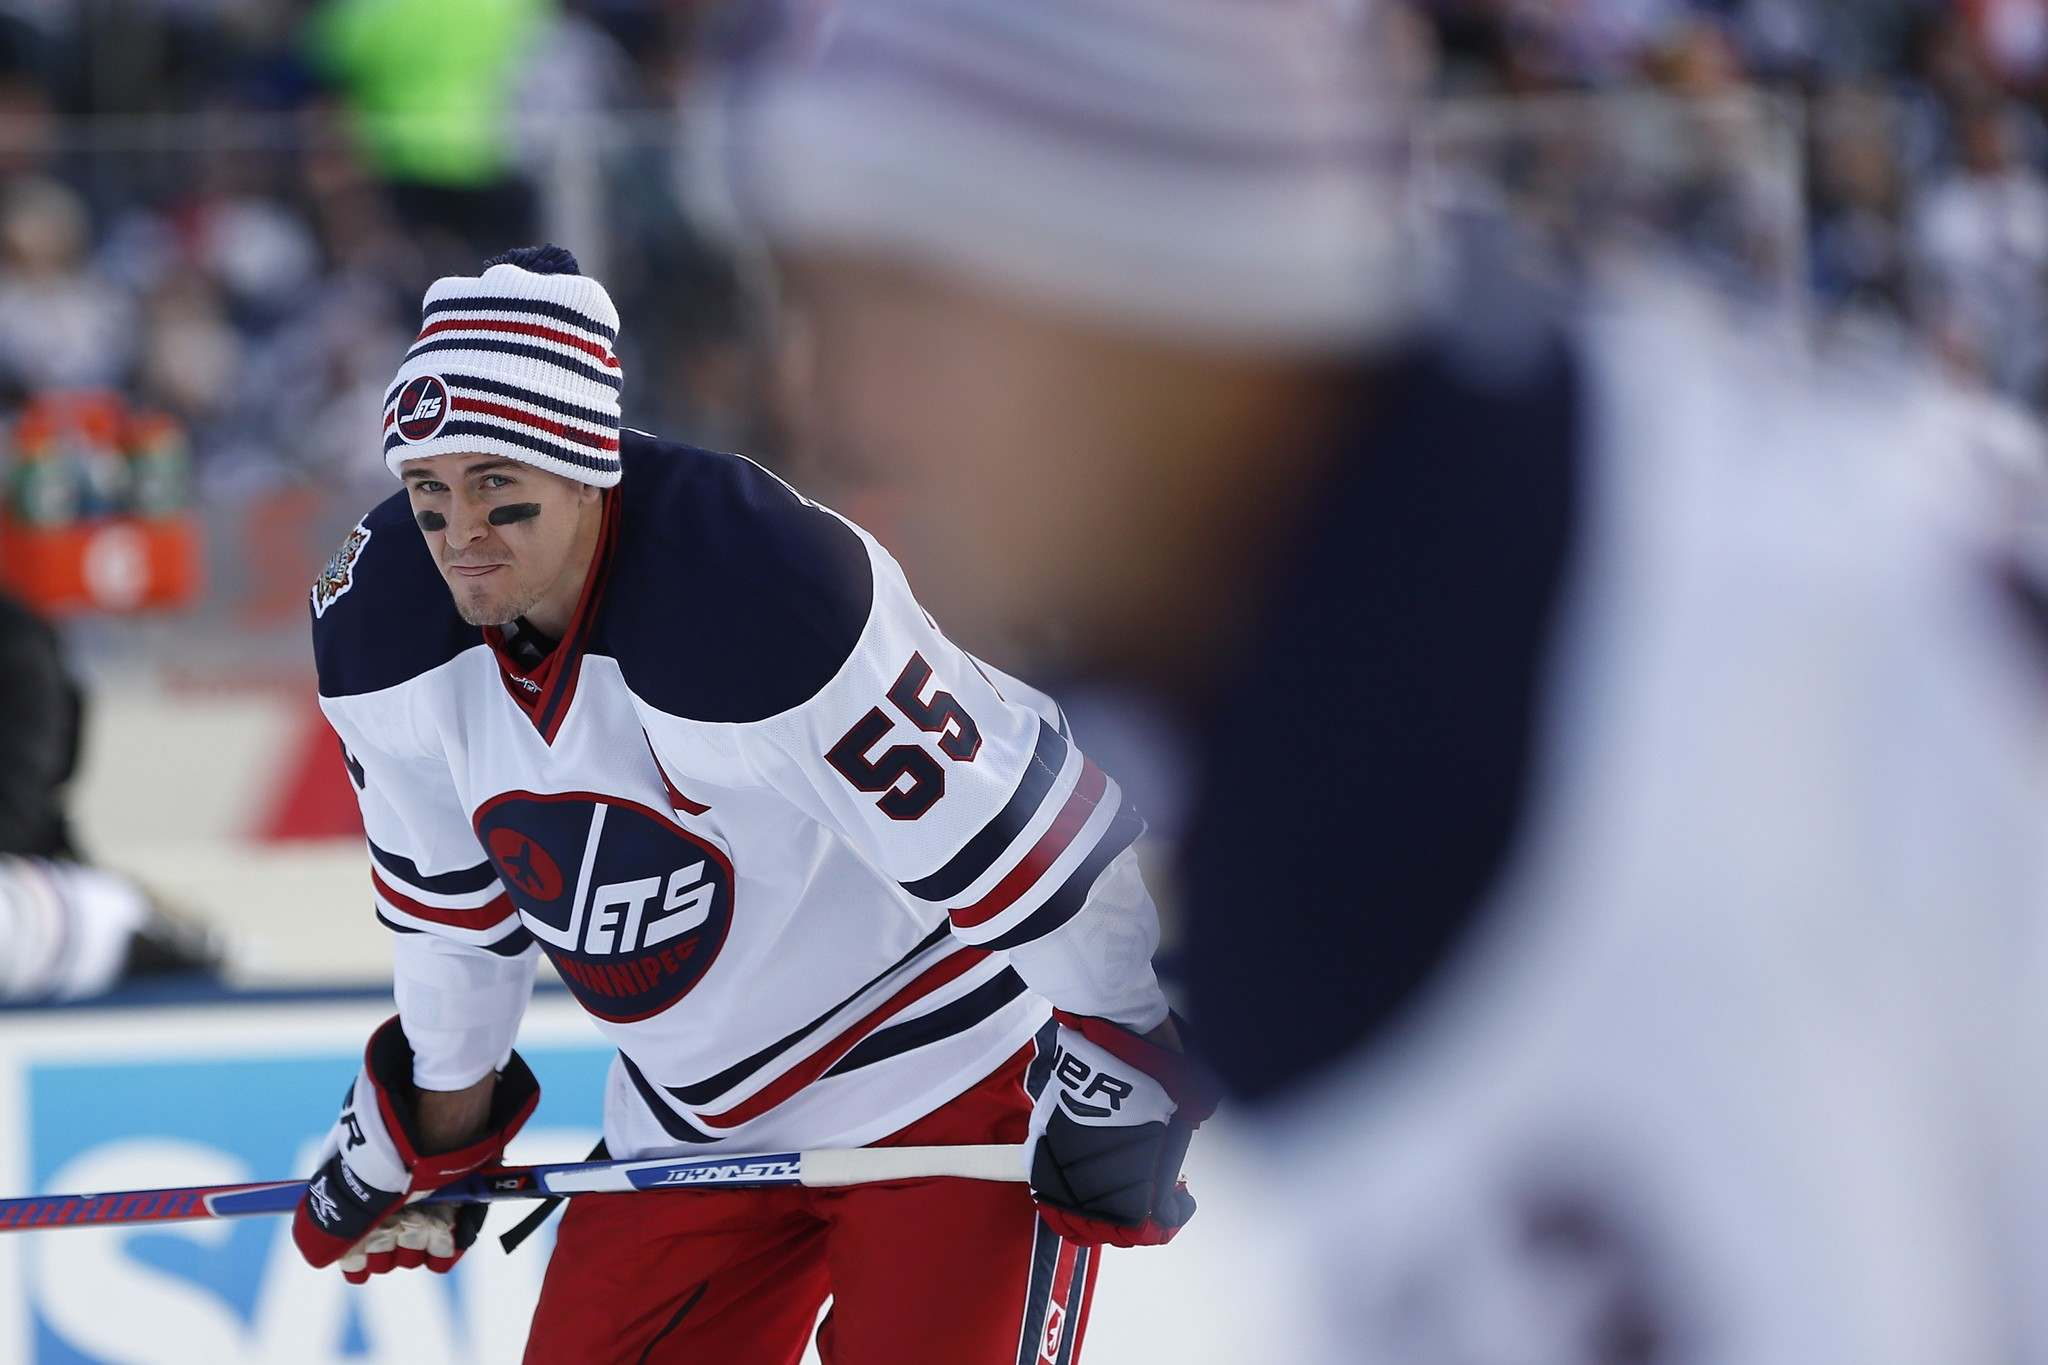 John Woods / The Canadian Press</p><p>Winnipeg Jets' Mark Scheifele (55) looks on as Patrik Laine (29) takes a shot during the warmup skate at the NHL Heritage Classic in Winnipeg on Sunday.</p>